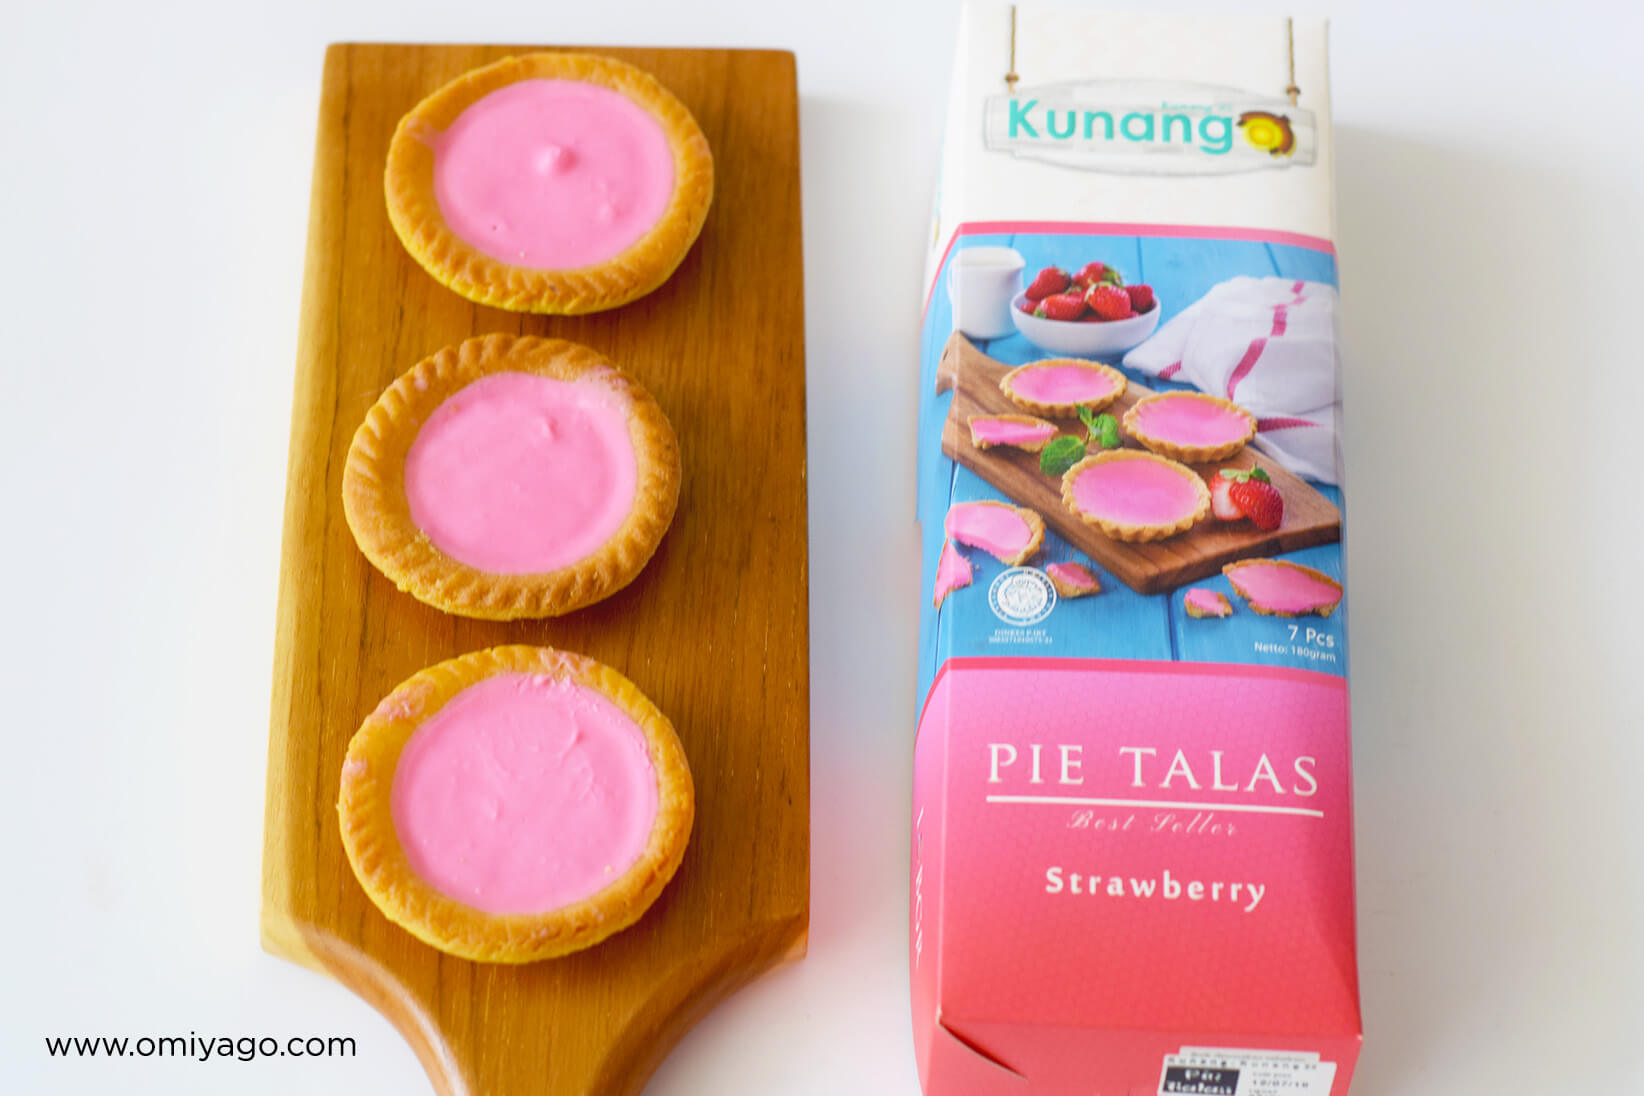 Pie Talas Kunang Strawberry